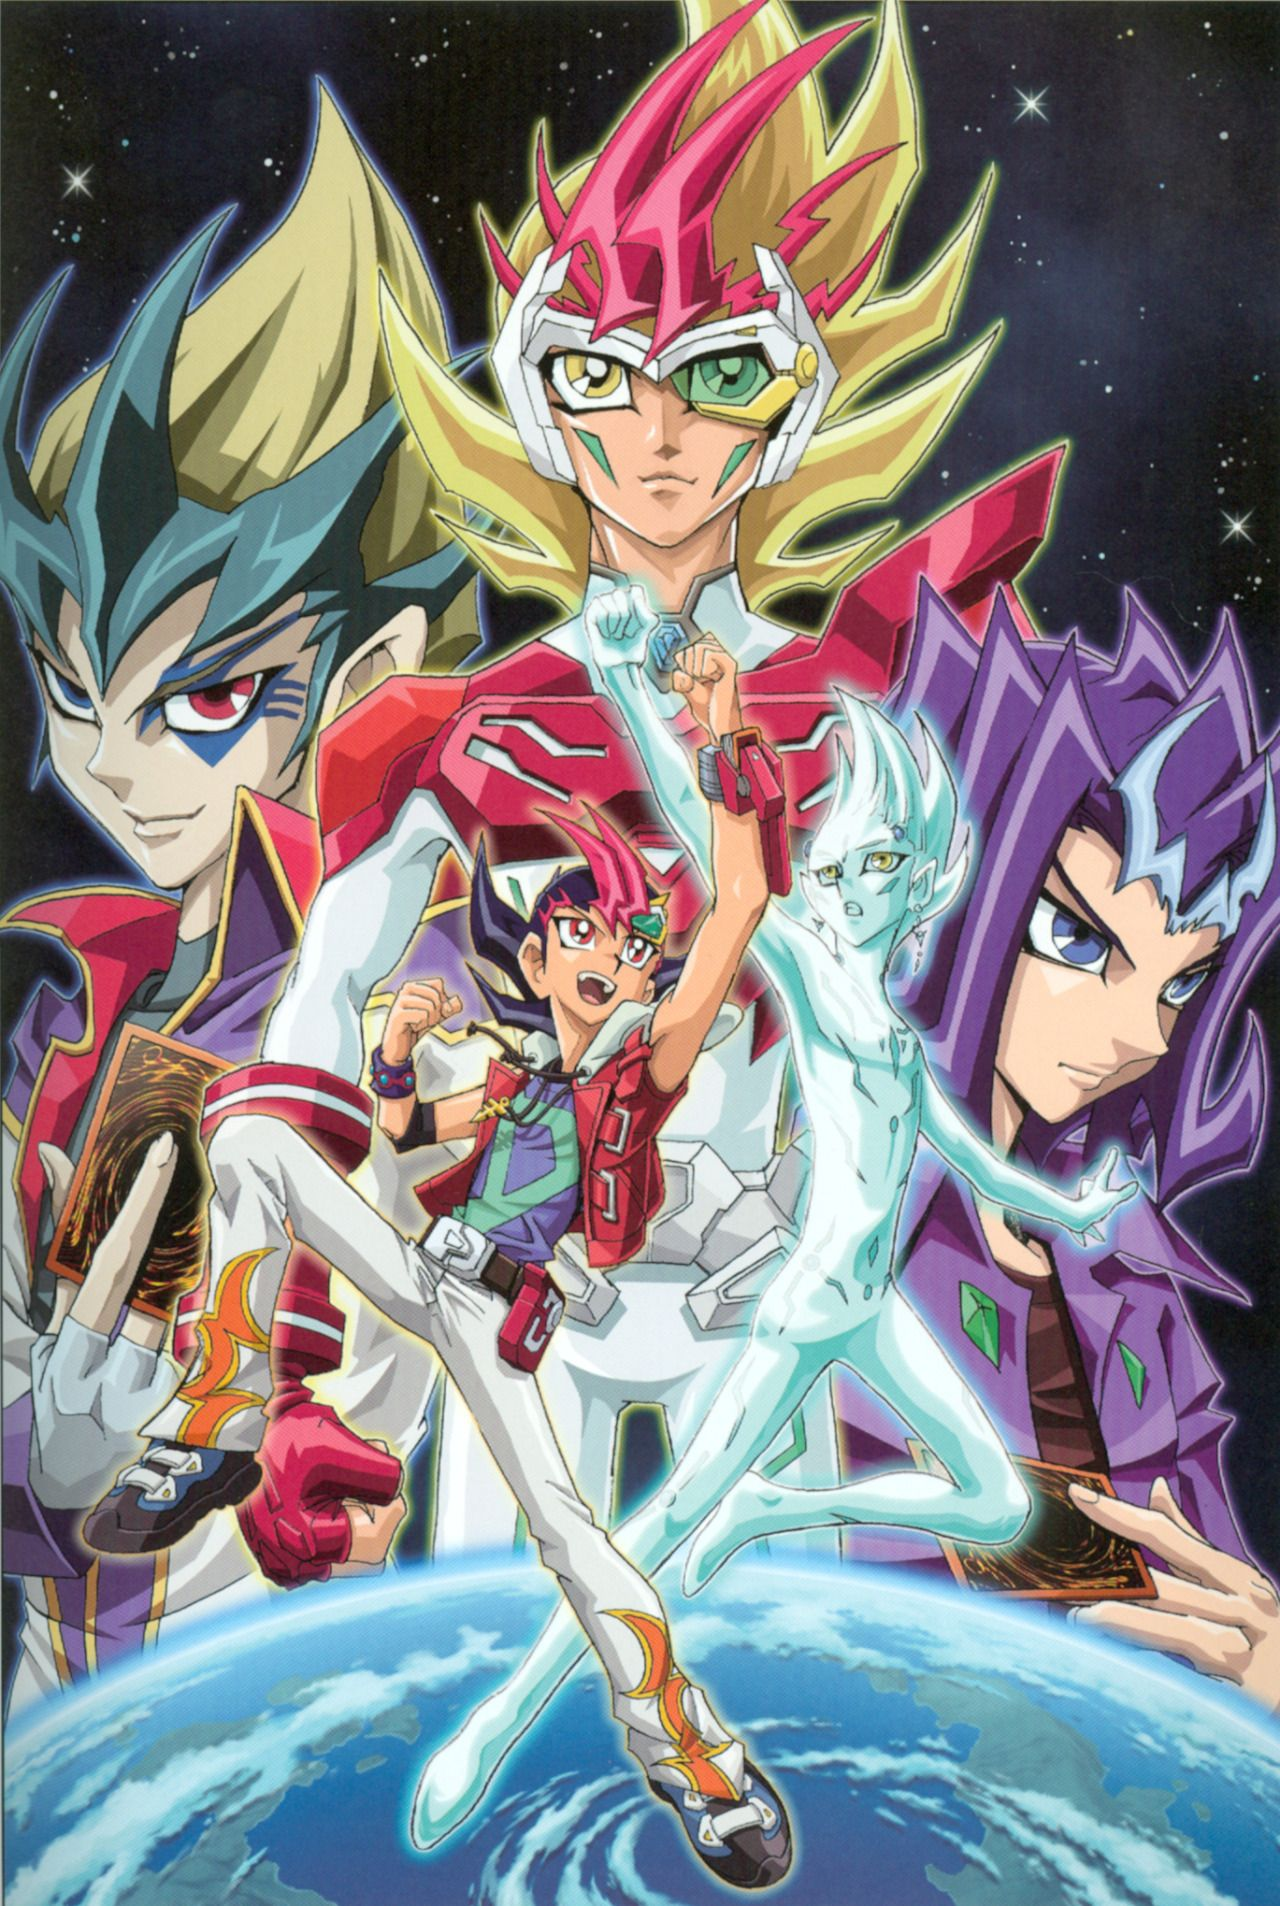 yu gi oh zexal (With images) Yu gi oh zexal, Anime, Yugioh